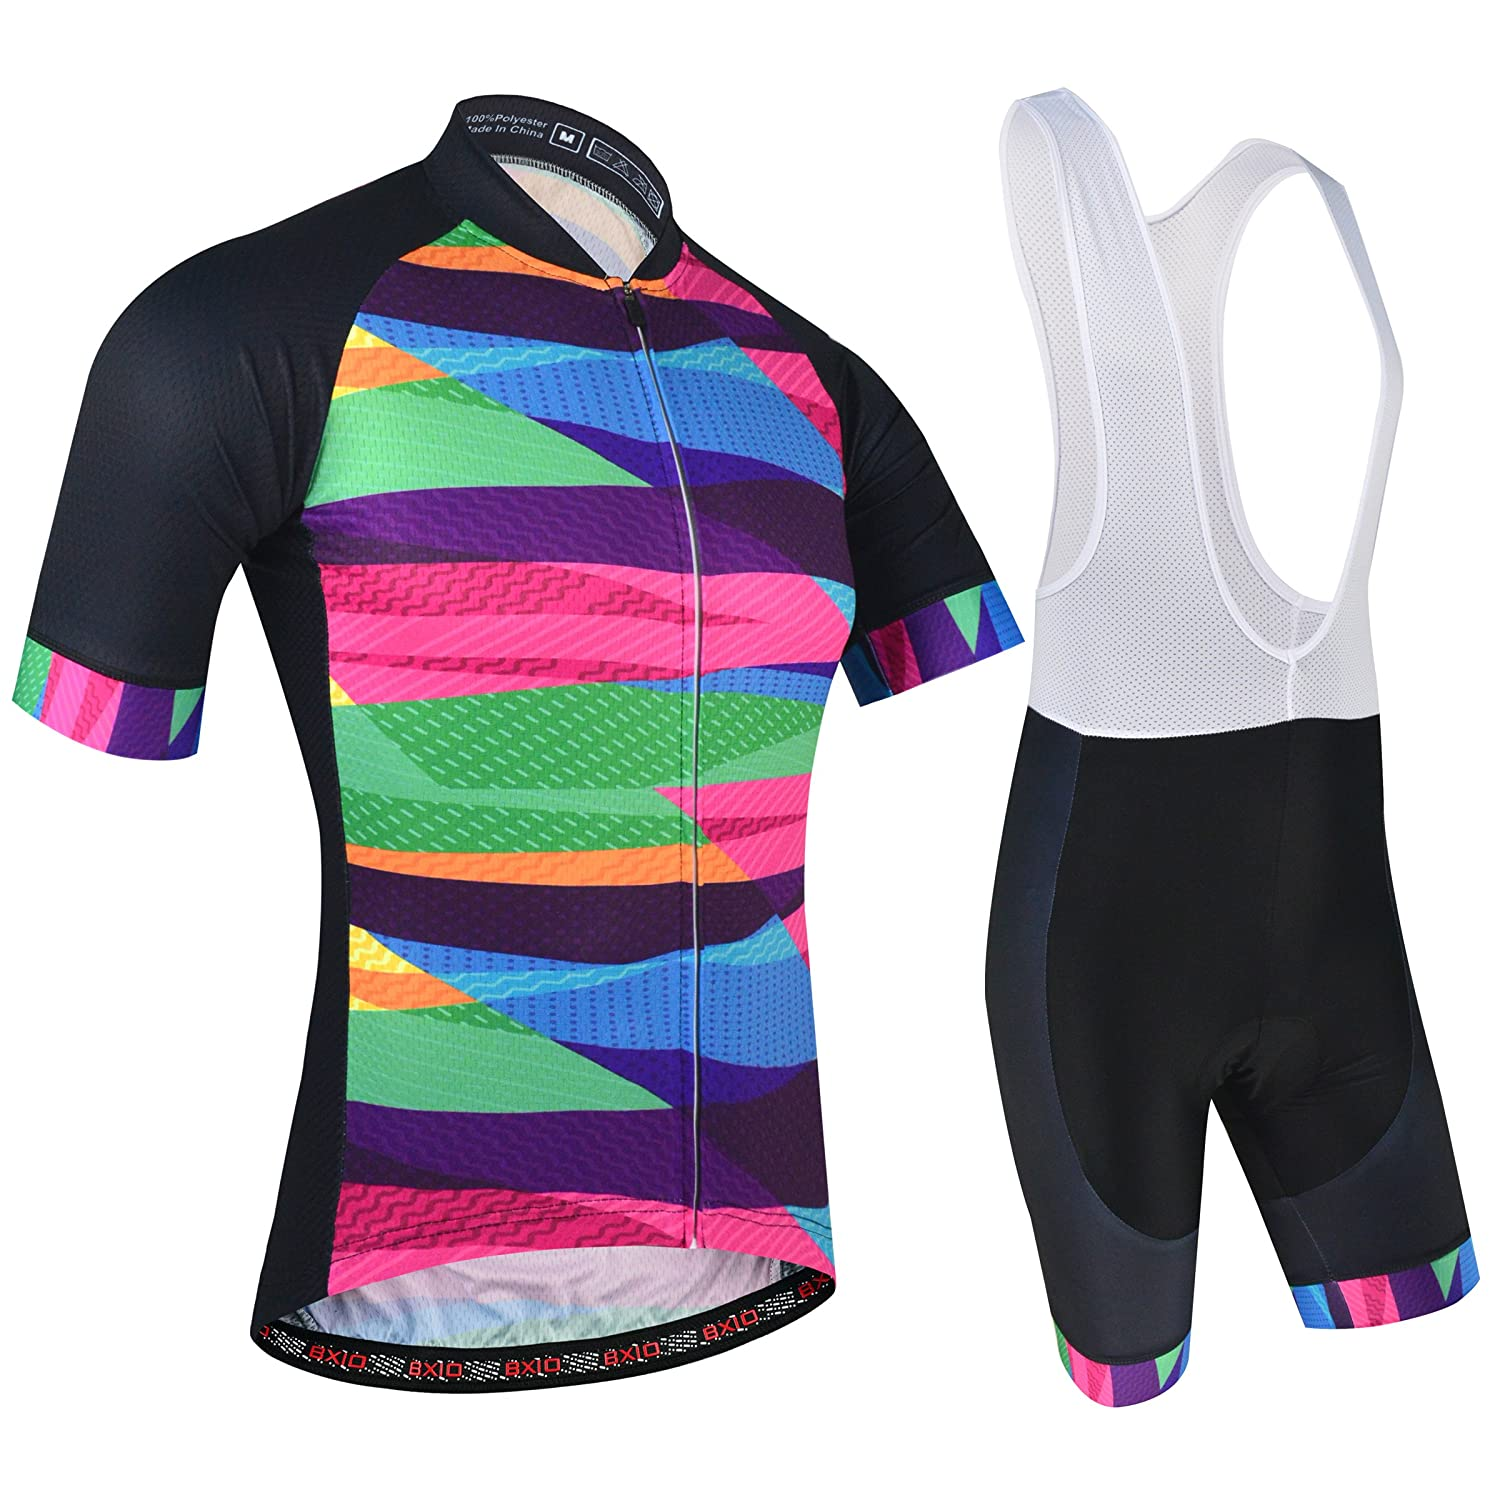 Mens Cycling Shorts with 3 Elastic Rear Pockets Stripped Multi-Colour Gel Pad and Anti-Skip Strip for Cyclist and MTB Pro Racing Full Zipper BXIO Cycling Jersey and Bib Shorts